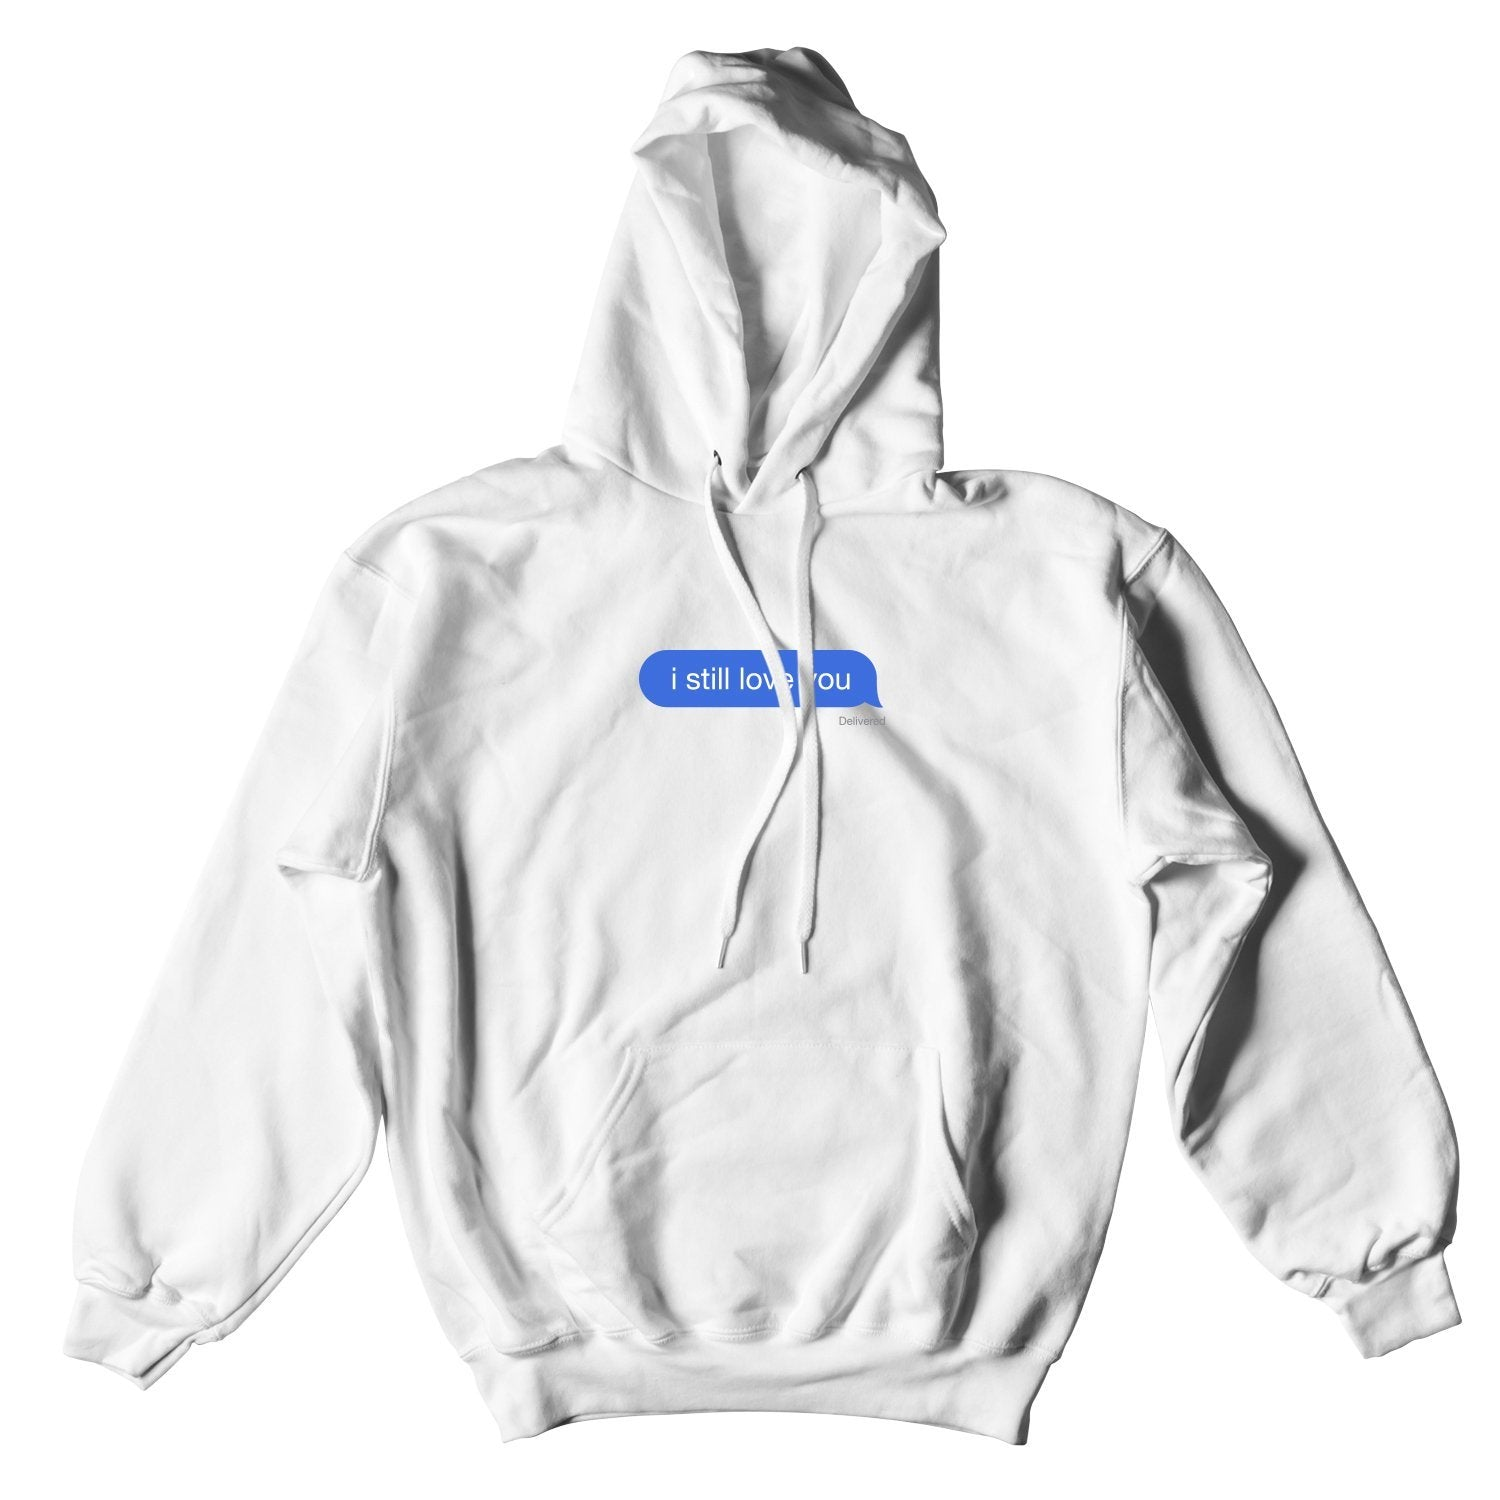 ISLY DELIVERED MESSAGE HOODIE WHITE